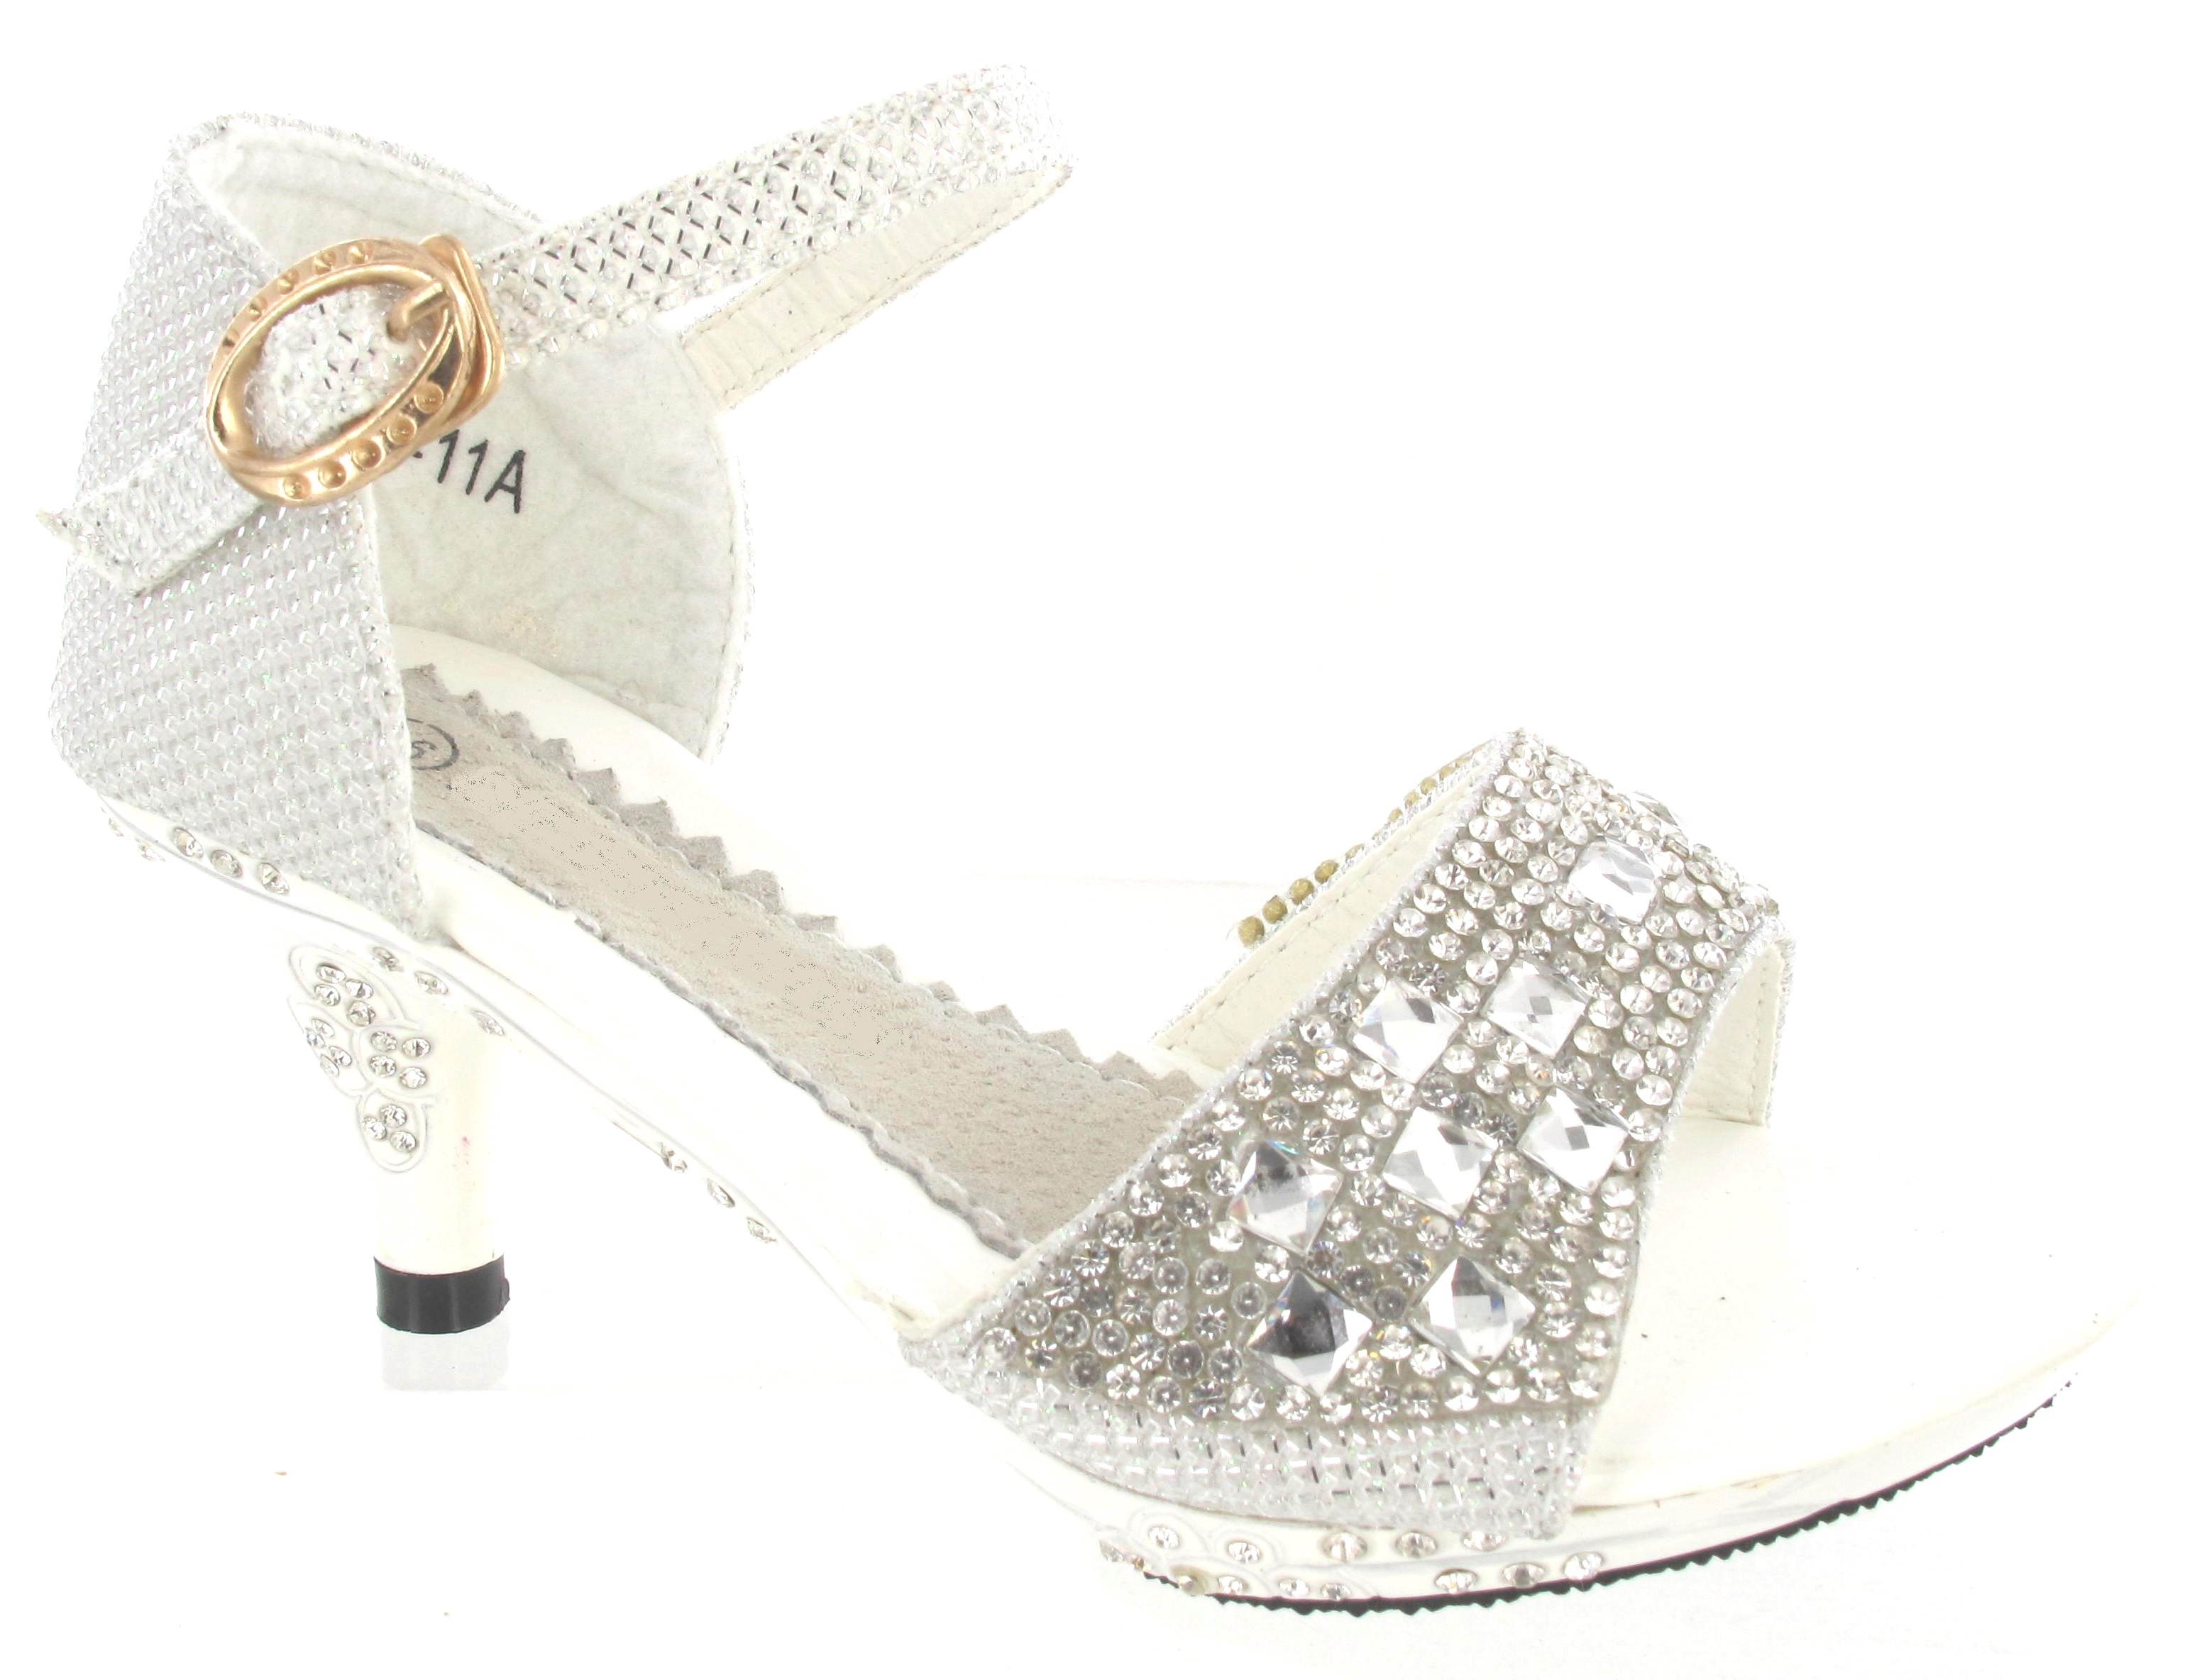 NEW GIRLS MID HIGH HEEL WEDDING PARTY BIRDESMAID DIAMANTE SANDALS KIDS SHOES SZ